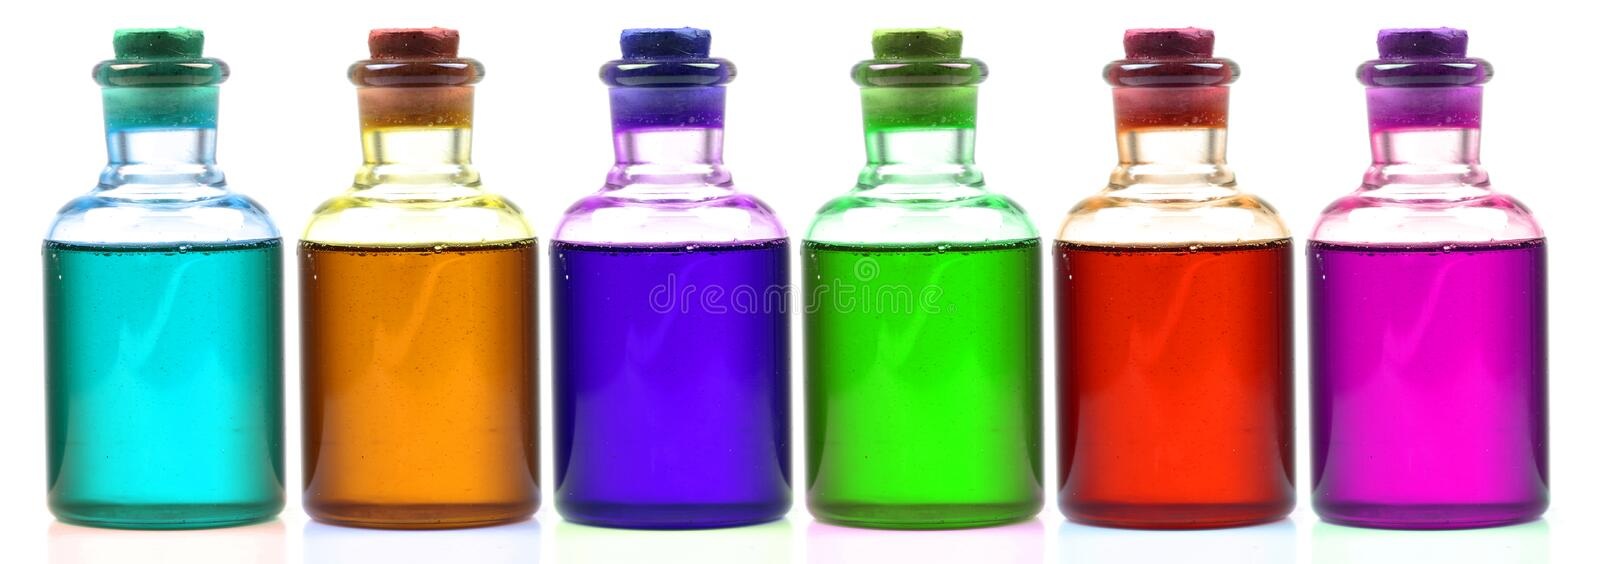 Colored chemical bottles. Isolated on white background royalty free stock photography